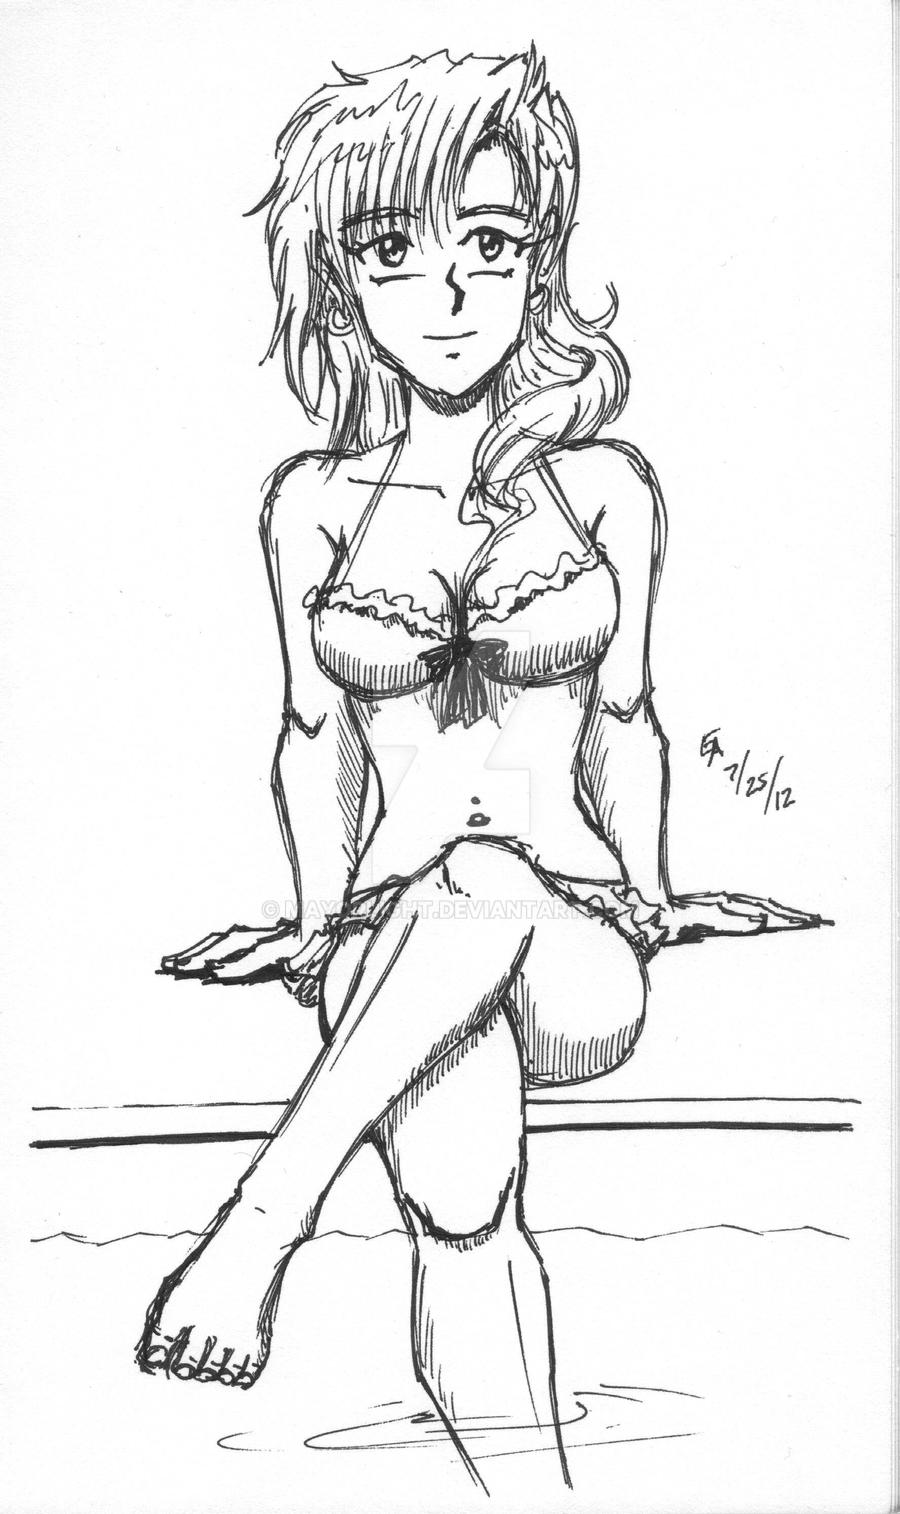 FF13: Lightning bikini sketch by mayorlight